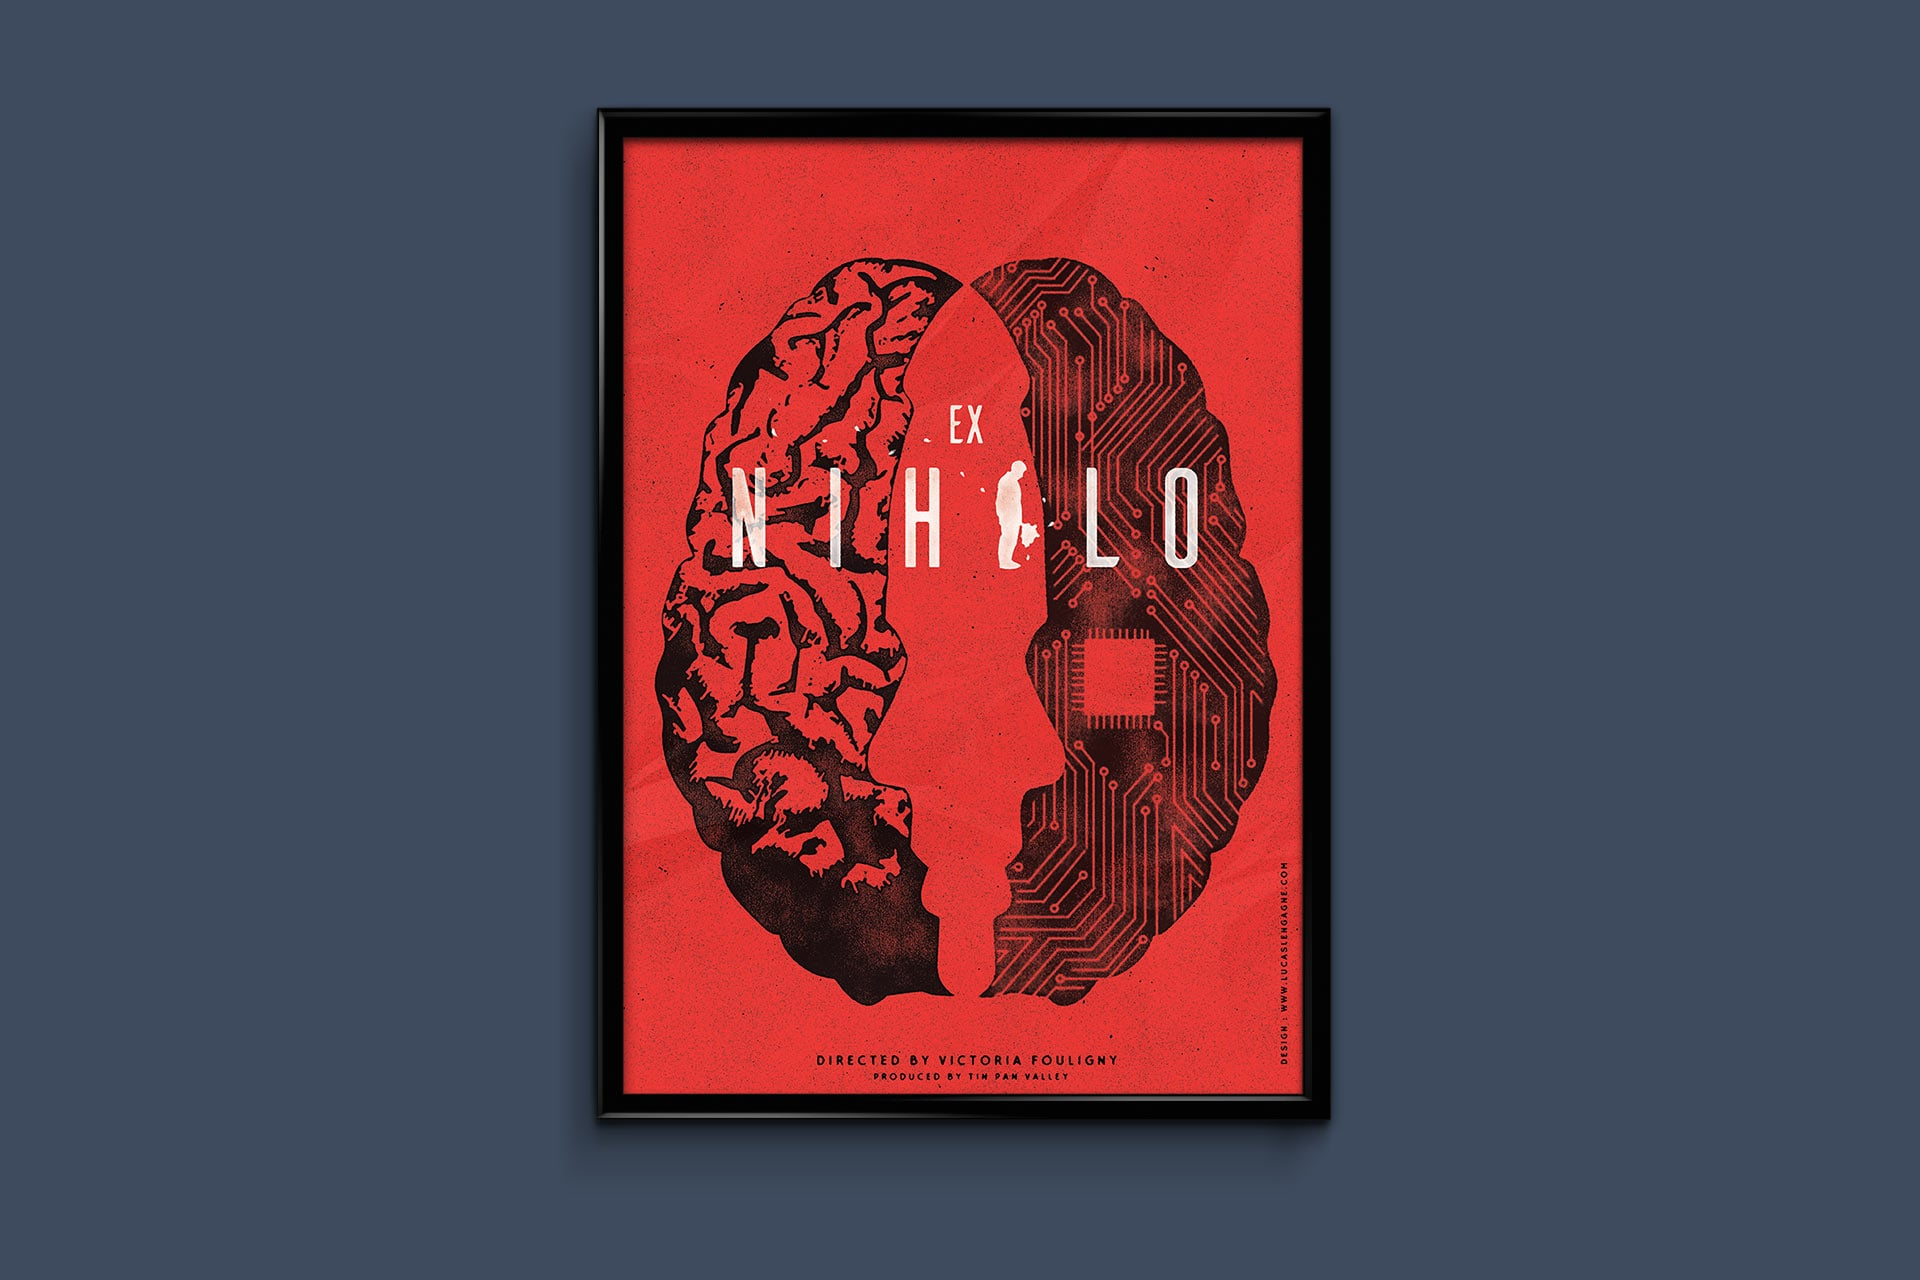 Illustrations-Ex-Nihilo-official-poster